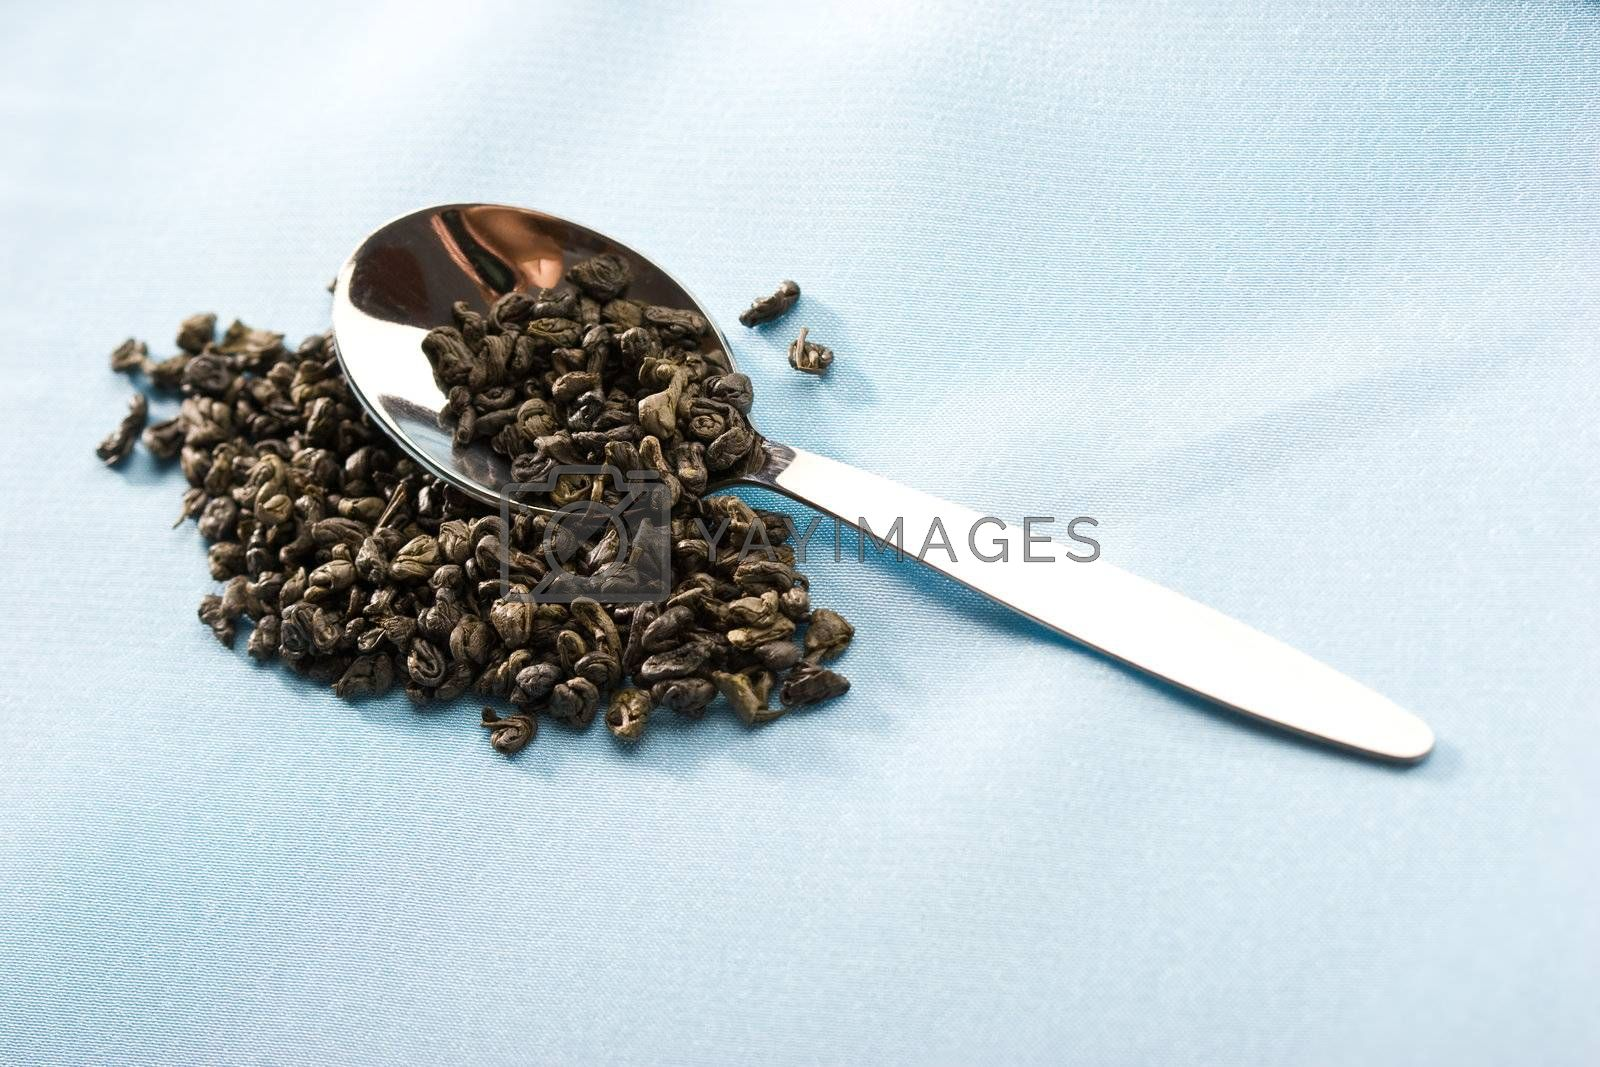 Royalty free image of tea leaves by agg